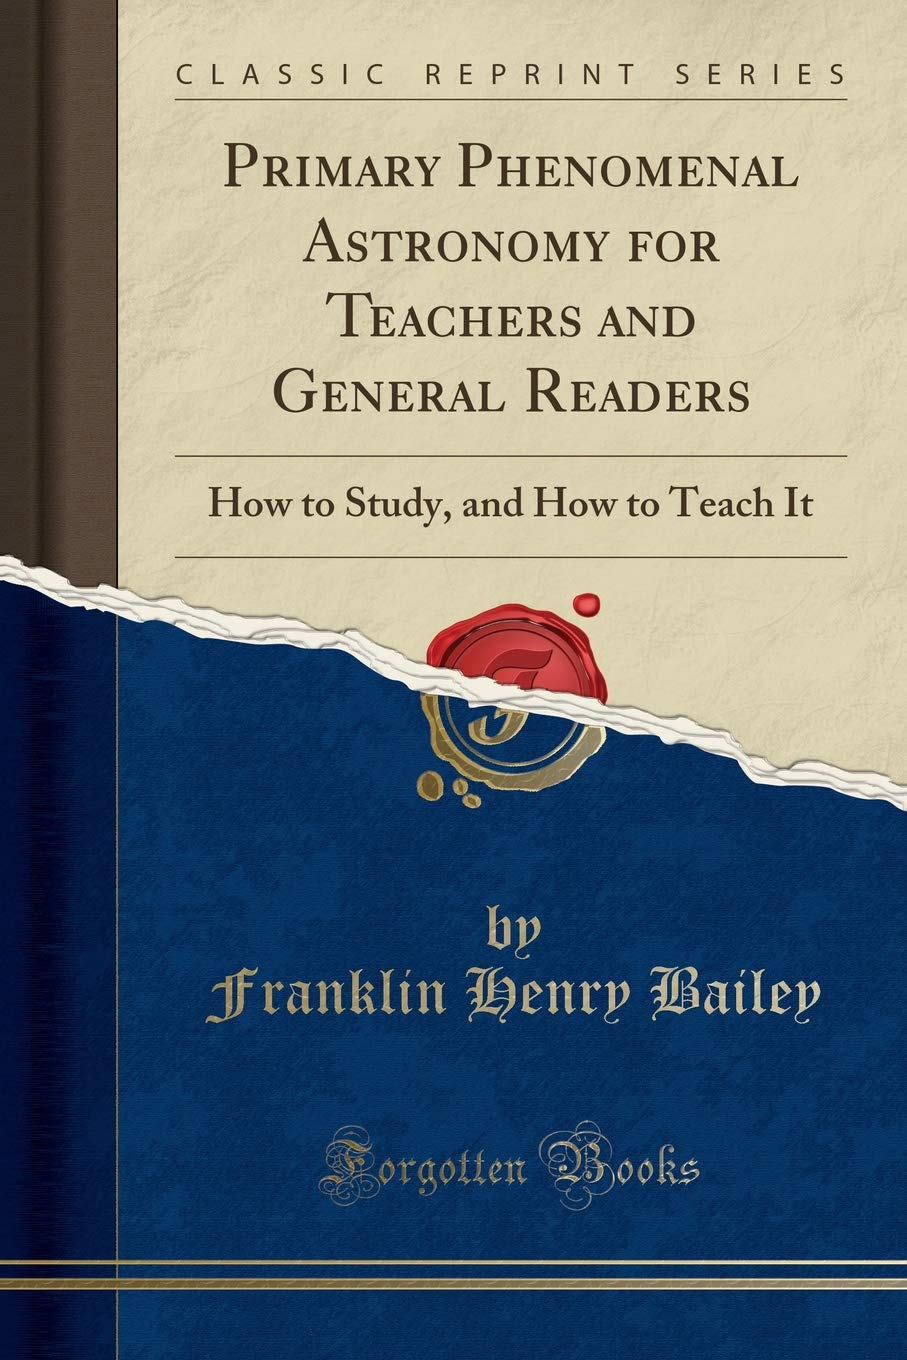 Primary Phenomenal Astronomy for Teachers and General Readers: How to Study, and How to Teach It (Classic Reprint) PDF